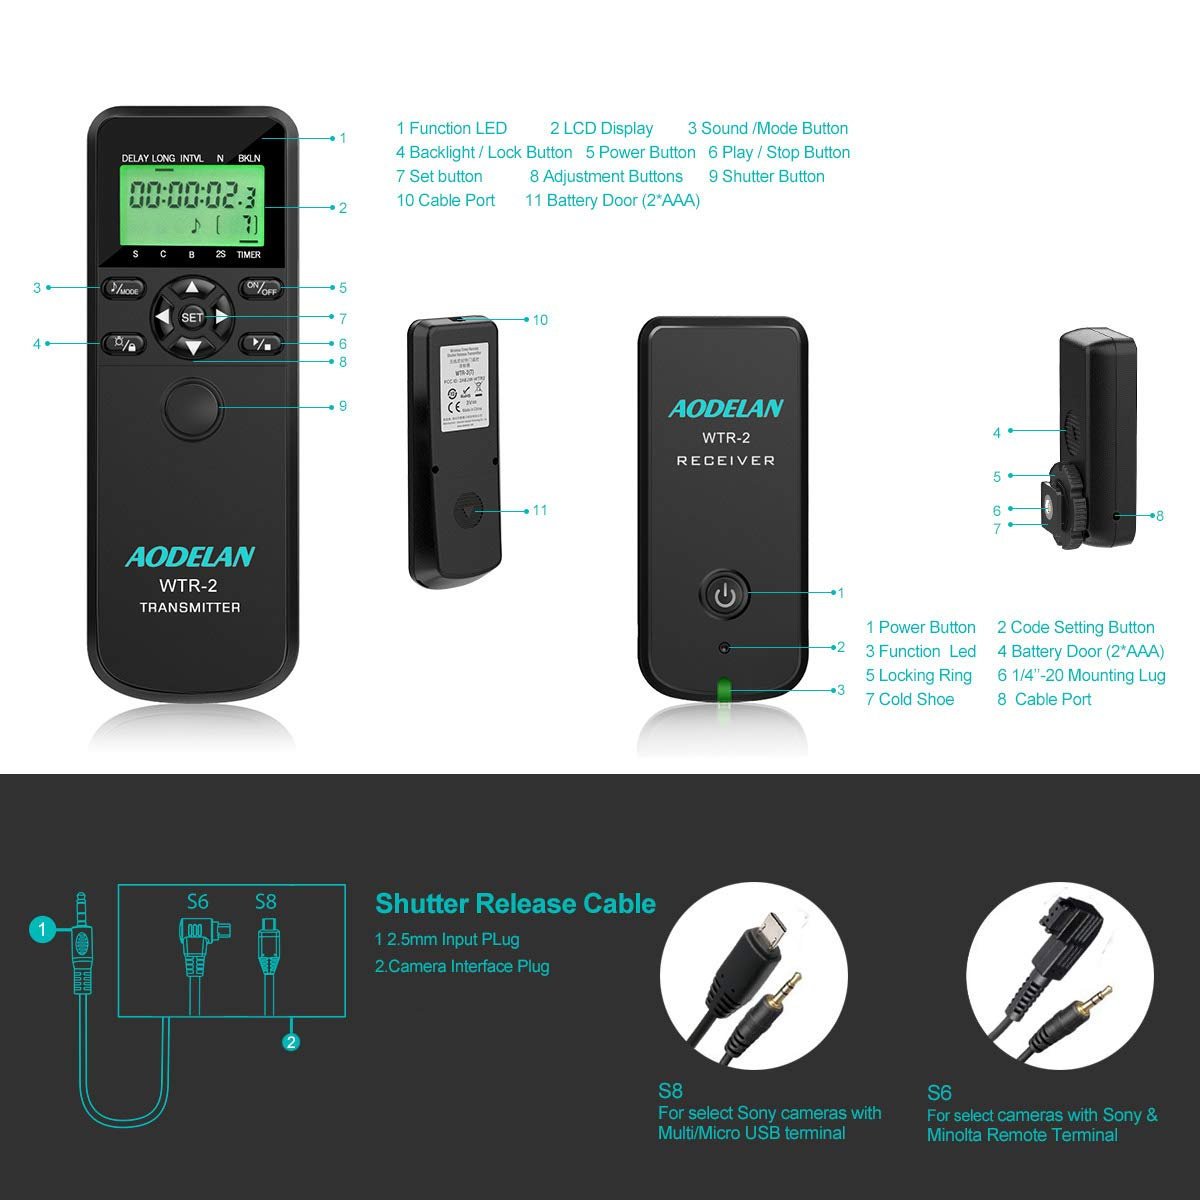 6D II 5D IV 6D Camera Remote Wireless Shutter Release Intervalometer with LCD for Canon EOS RP SX70 HS; for Fujifilm GFX 50R Rebel T6 T7i SL2 5D T7 X-T3; for Olympus OM-D E-M1 Mark II